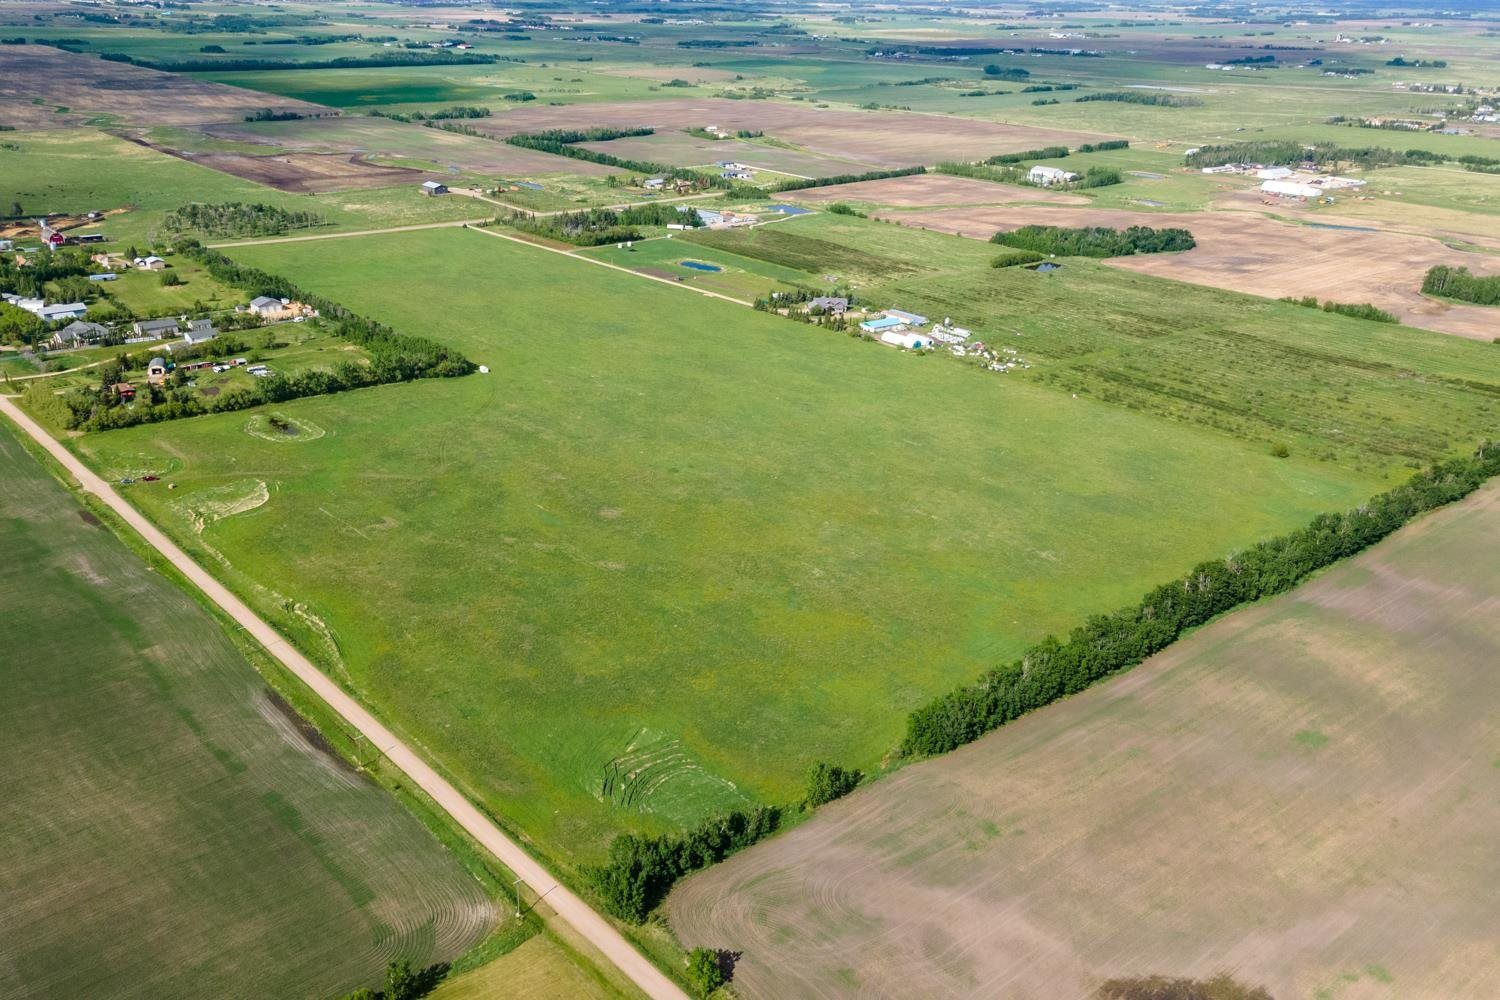 Main Photo: TWP 490 RR252: Rural Leduc County Rural Land/Vacant Lot for sale : MLS®# E4248157